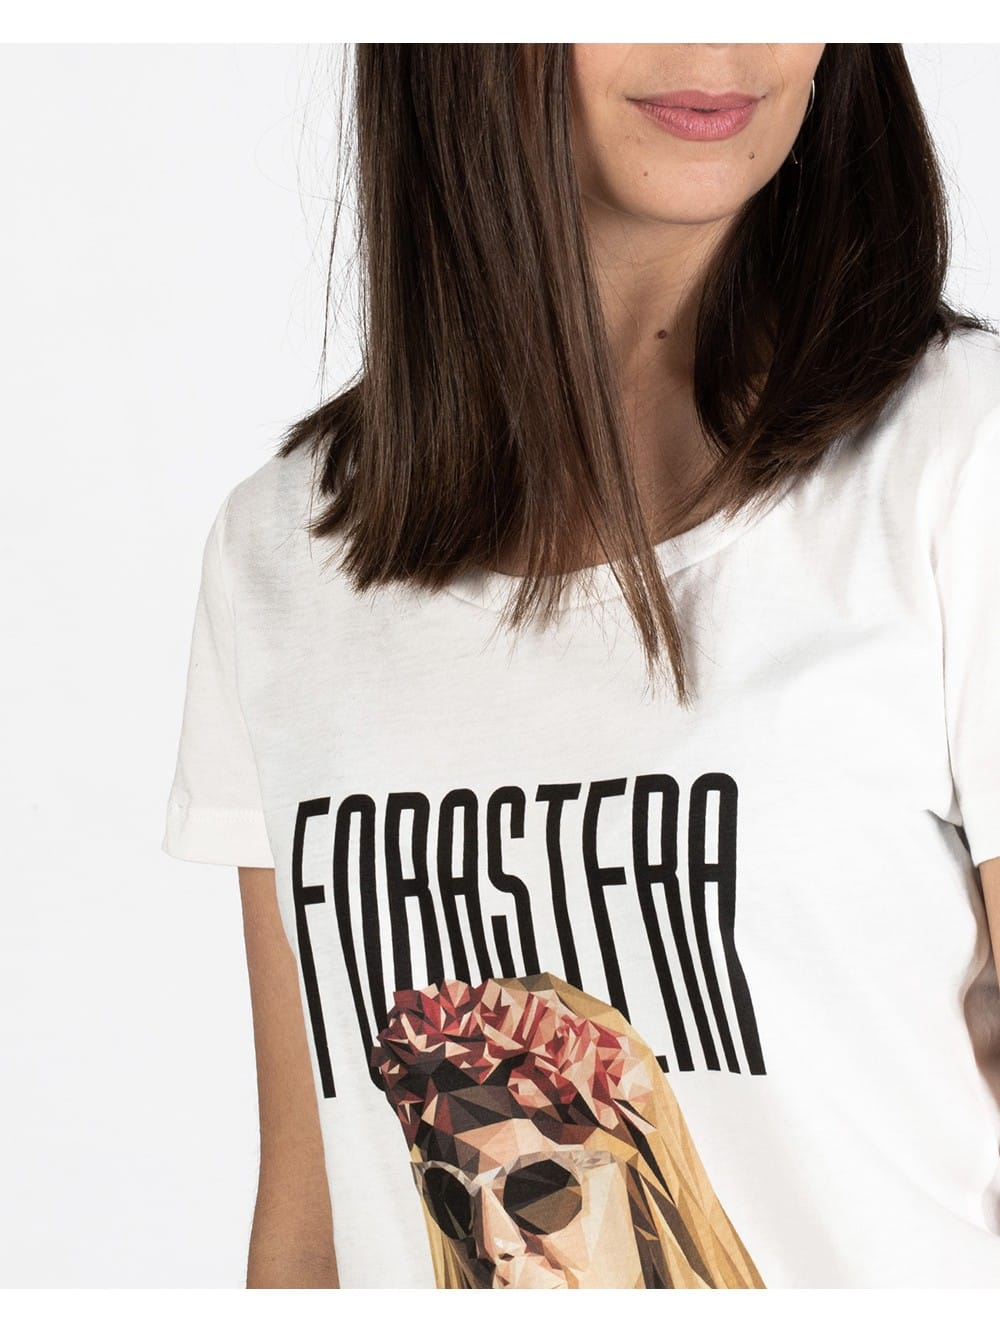 Organic cotton t-shirt-Forastera